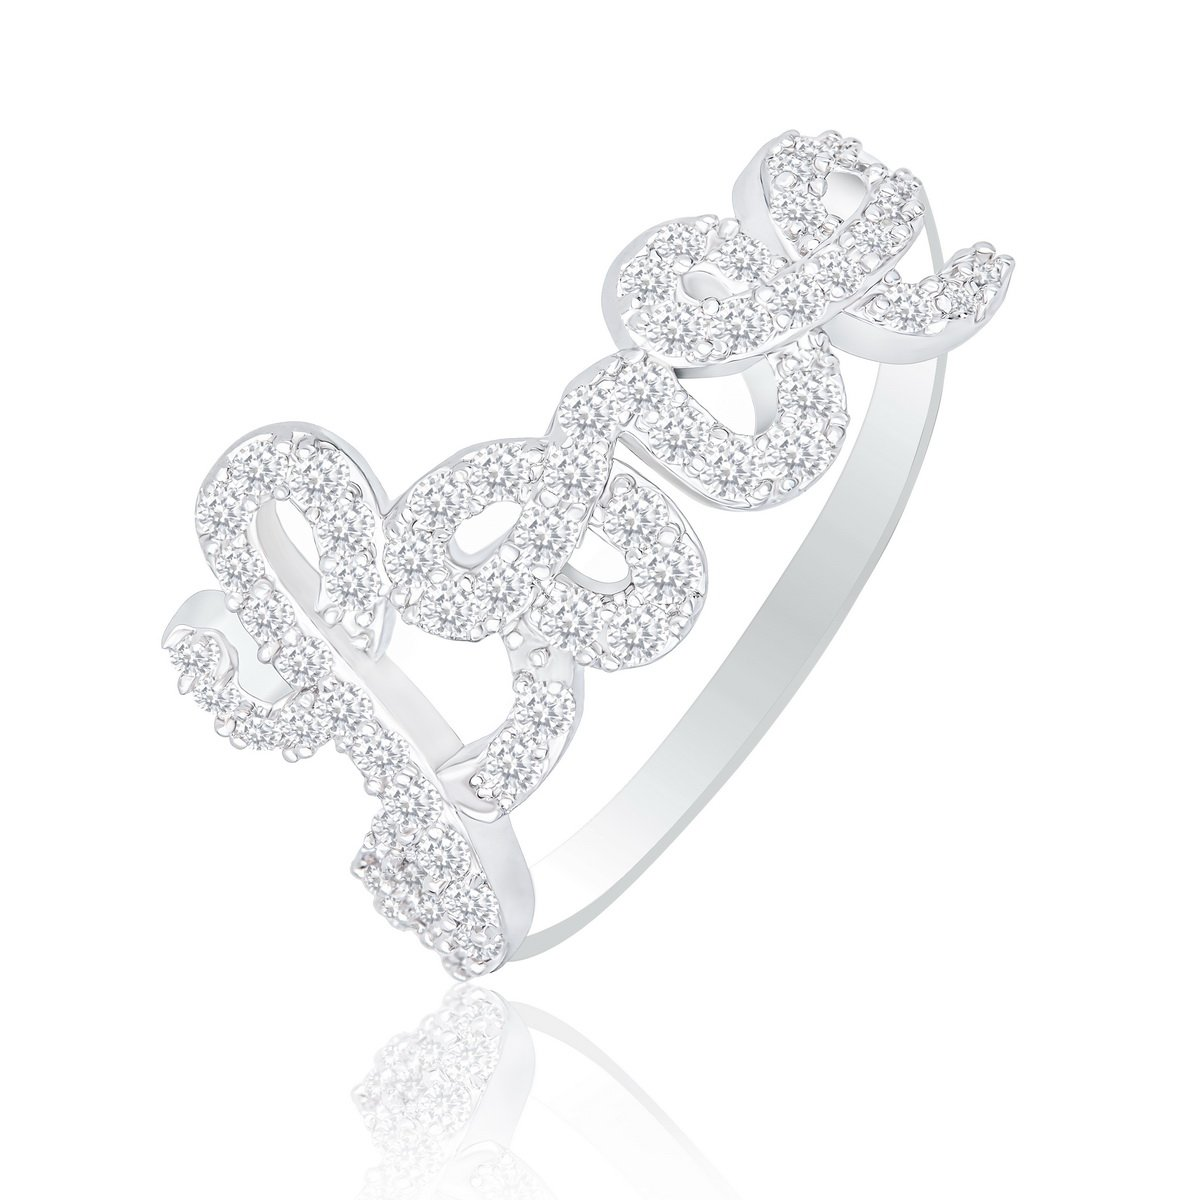 ORROUS & CO Women's 18K White Gold Plated Cubic Zirconia Love Ring